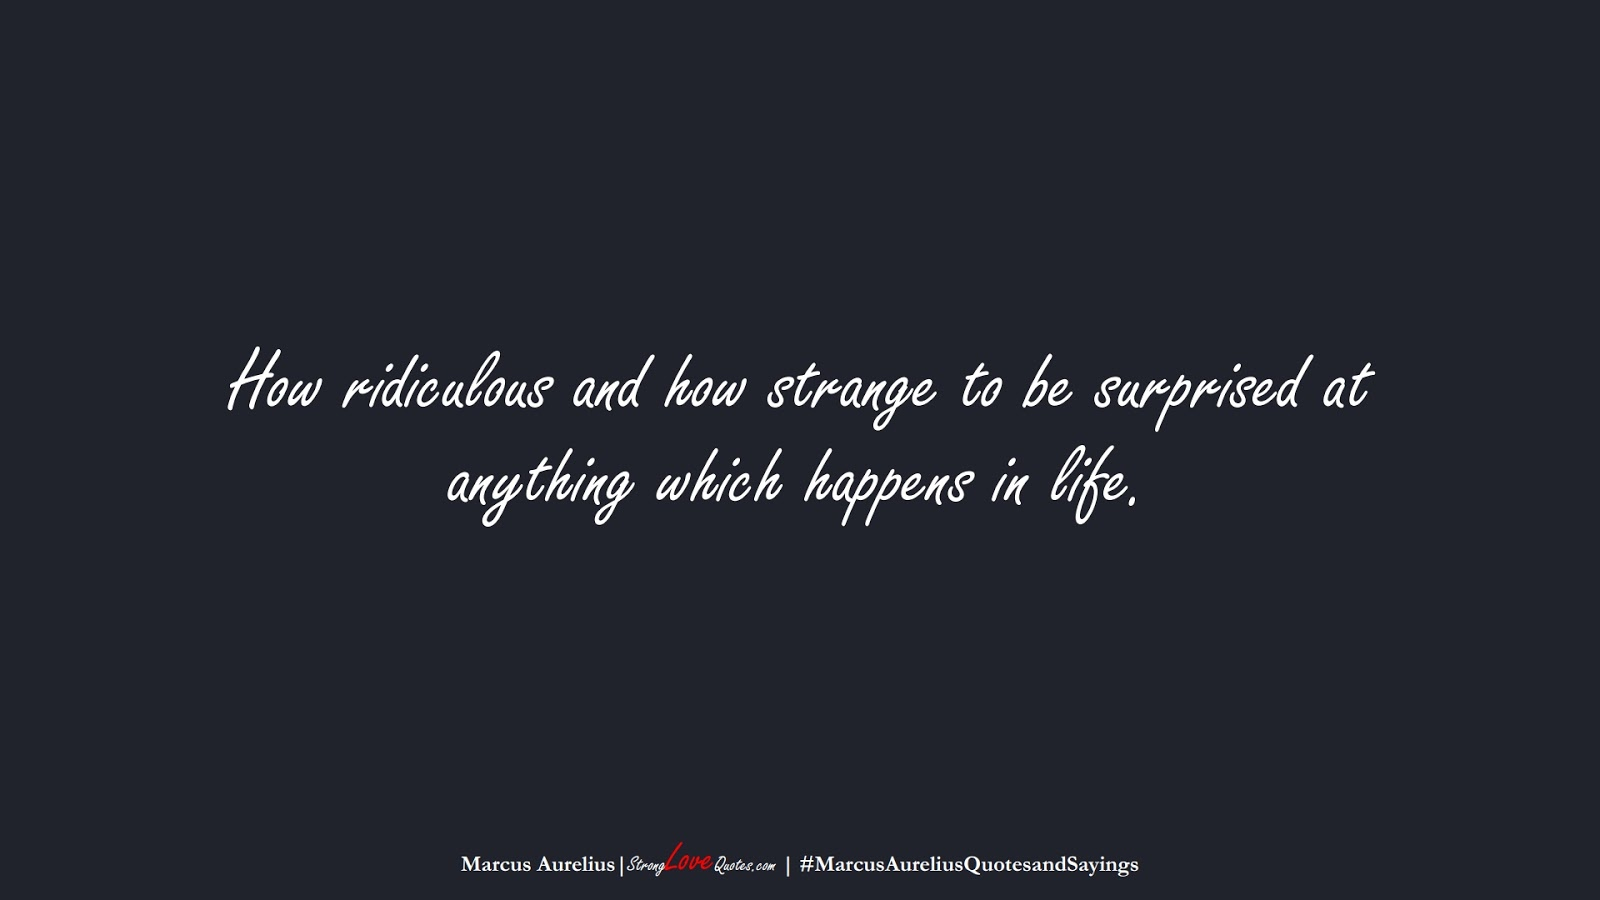 How ridiculous and how strange to be surprised at anything which happens in life. (Marcus Aurelius);  #MarcusAureliusQuotesandSayings